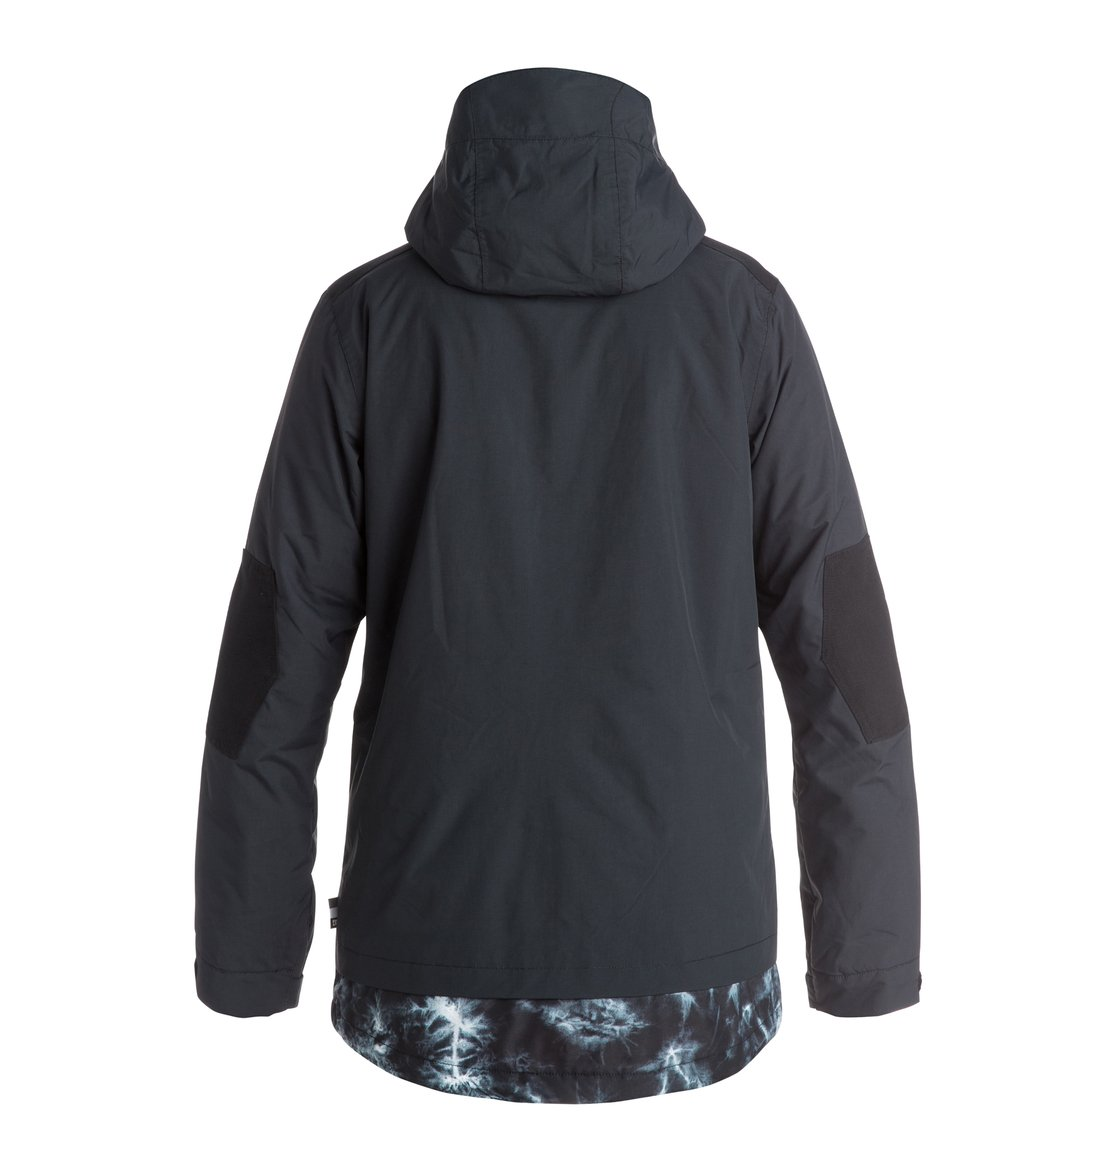 Dc Shoes Womens Riji Snow Jacket Edjtj